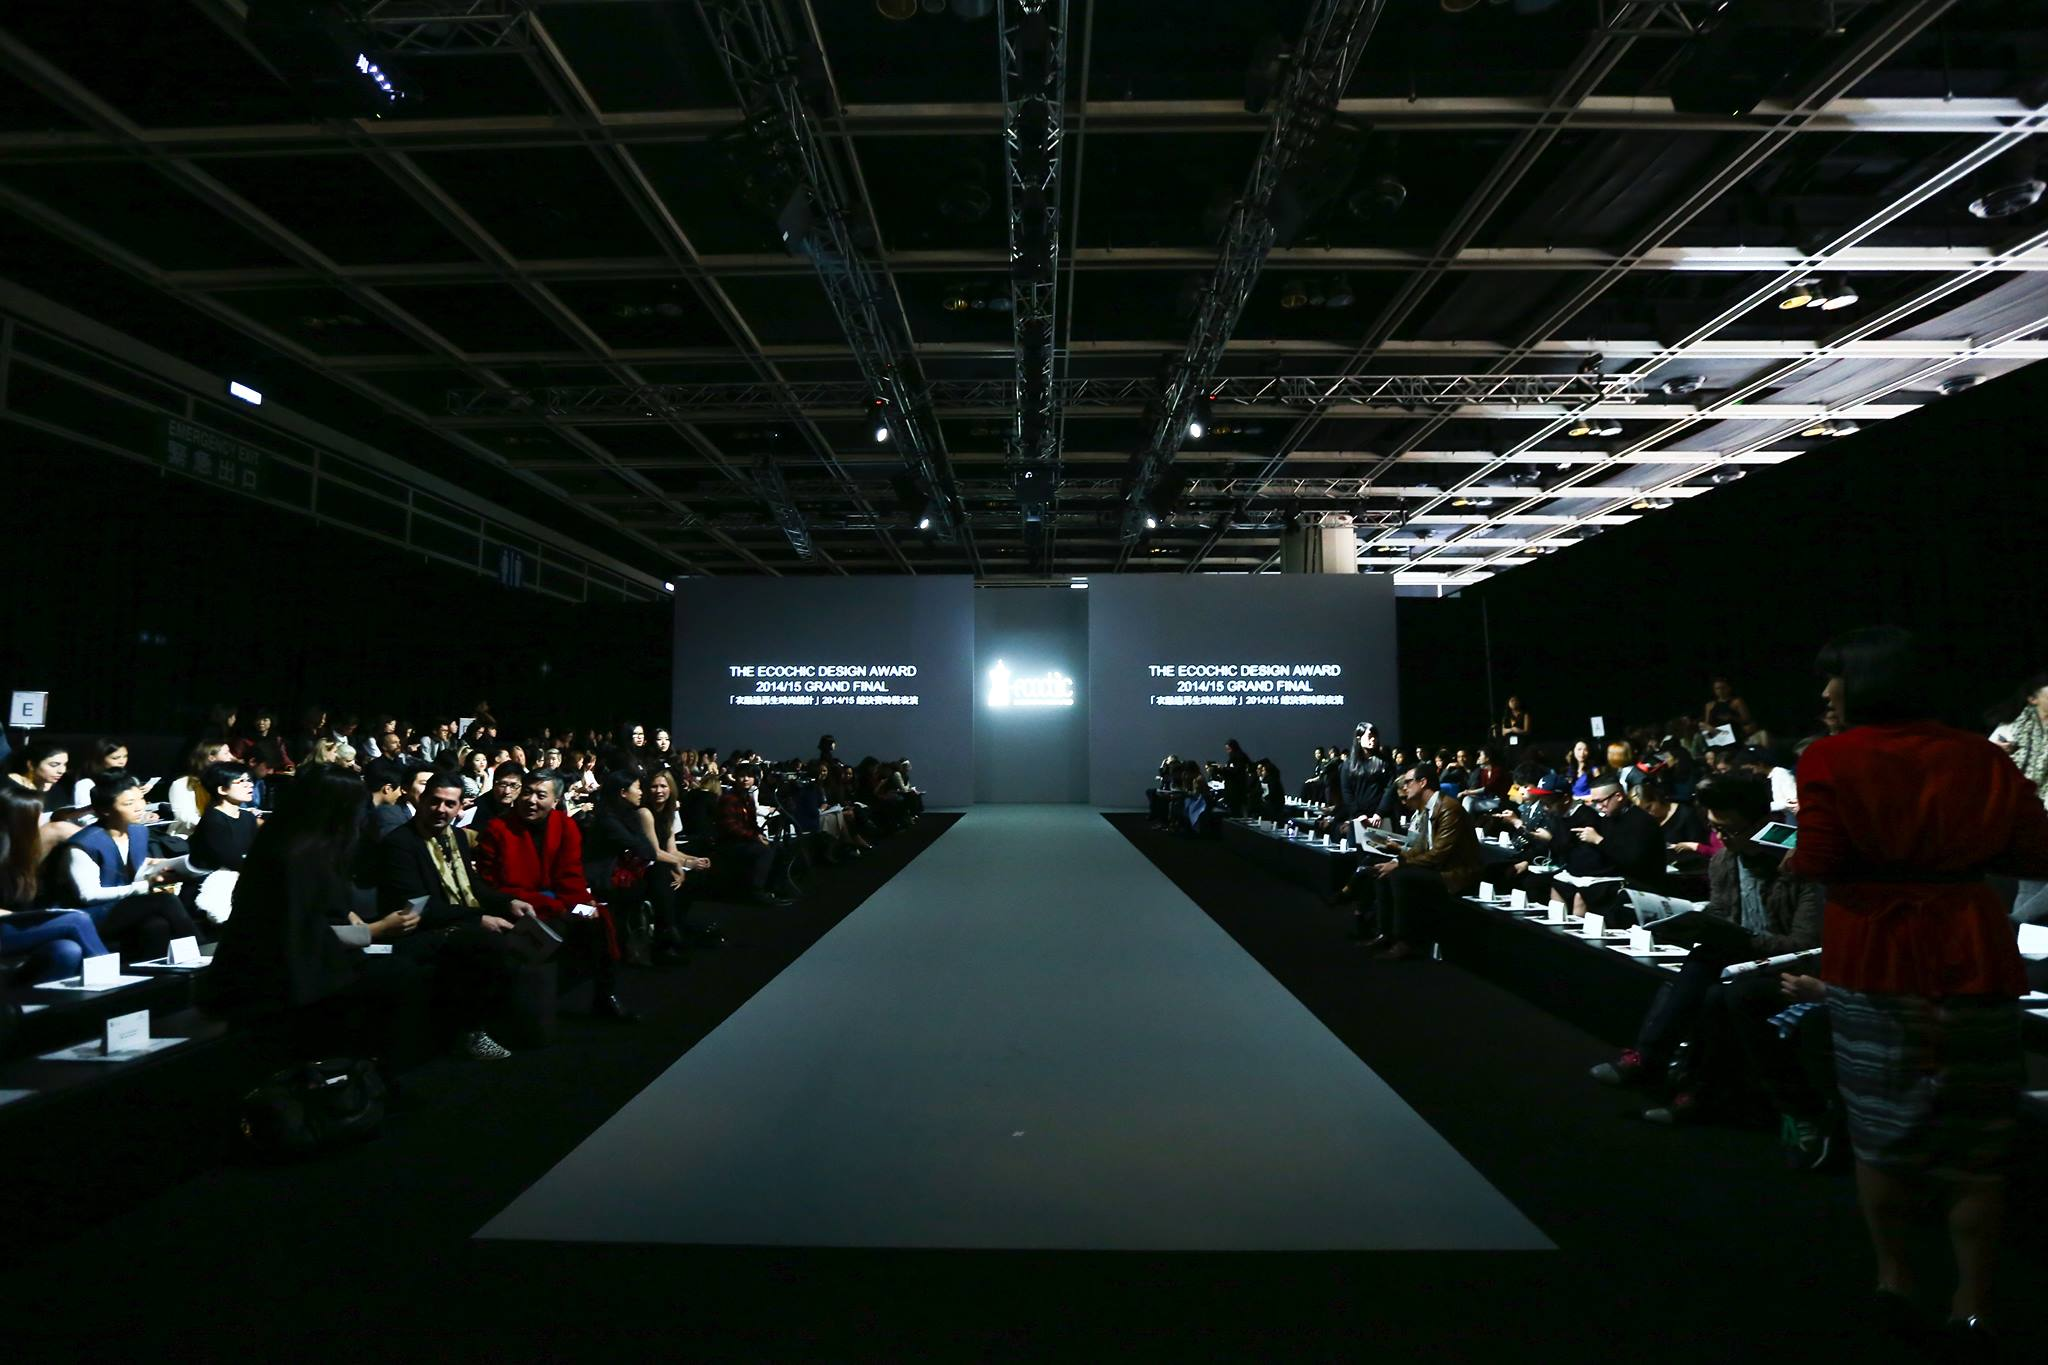 EcoChic Design Award Redress Fashion Competition Waste Sustinability Hong Kong